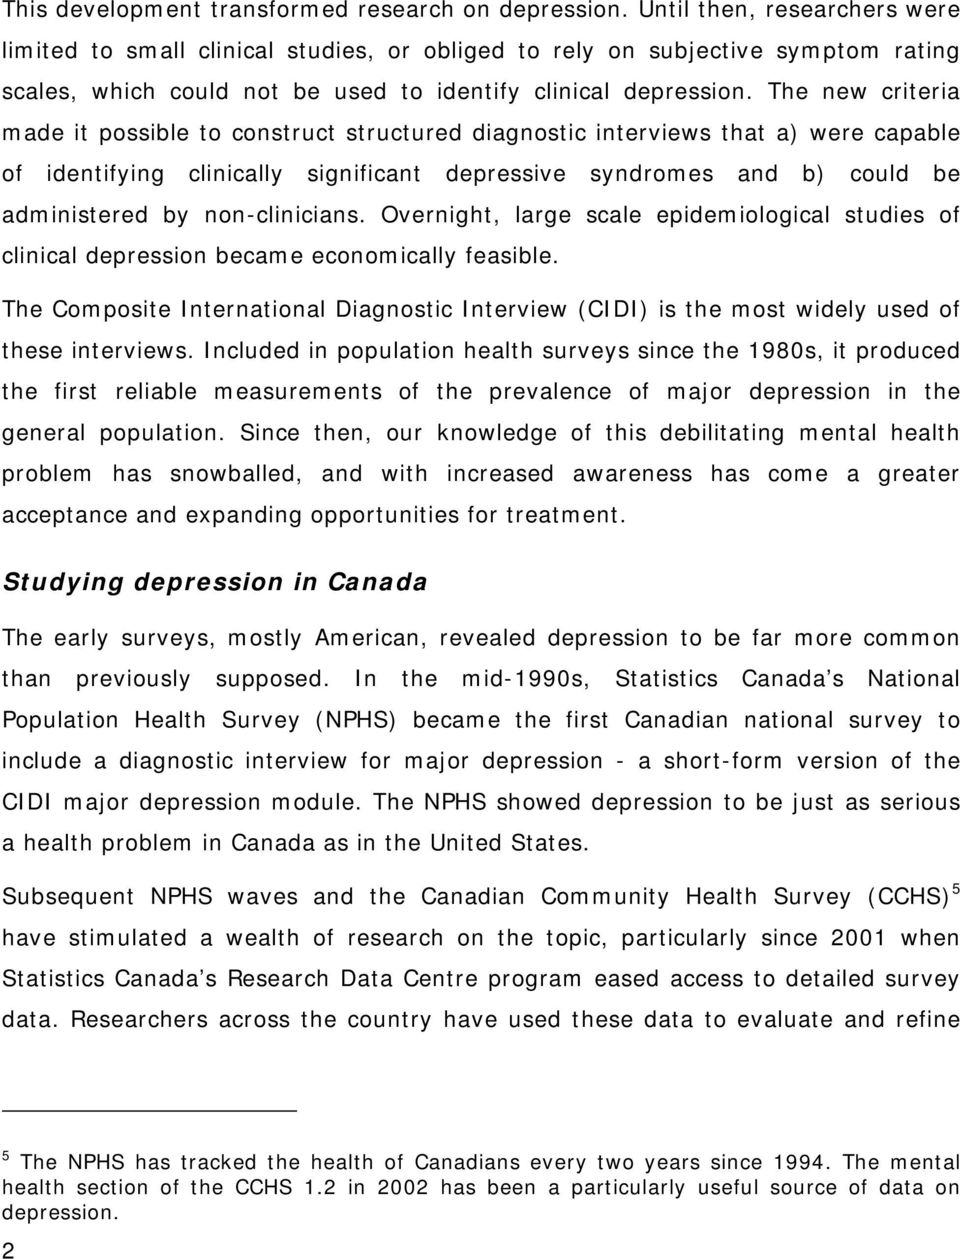 The new criteria made it possible to construct structured diagnostic interviews that a) were capable of identifying clinically significant depressive syndromes and b) could be administered by